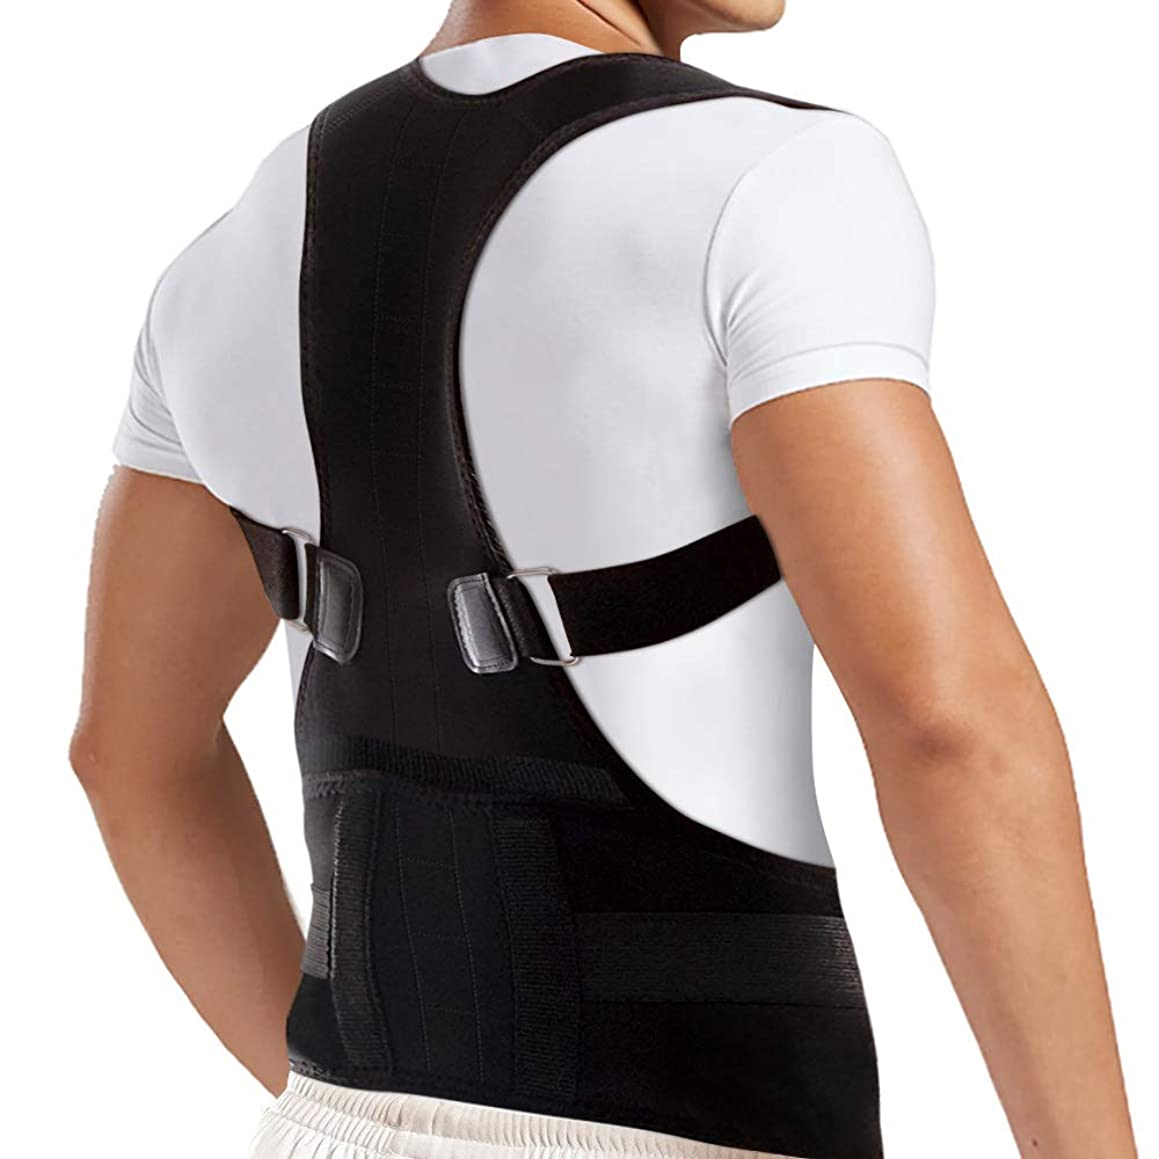 OMID Posture Corrector for Men and Women, Lower and Upper Back Brace for Back Support, Adjustable Back Straightener Helps with Keeping Good Posture, Providing Neck & Shoulder Pain Relief